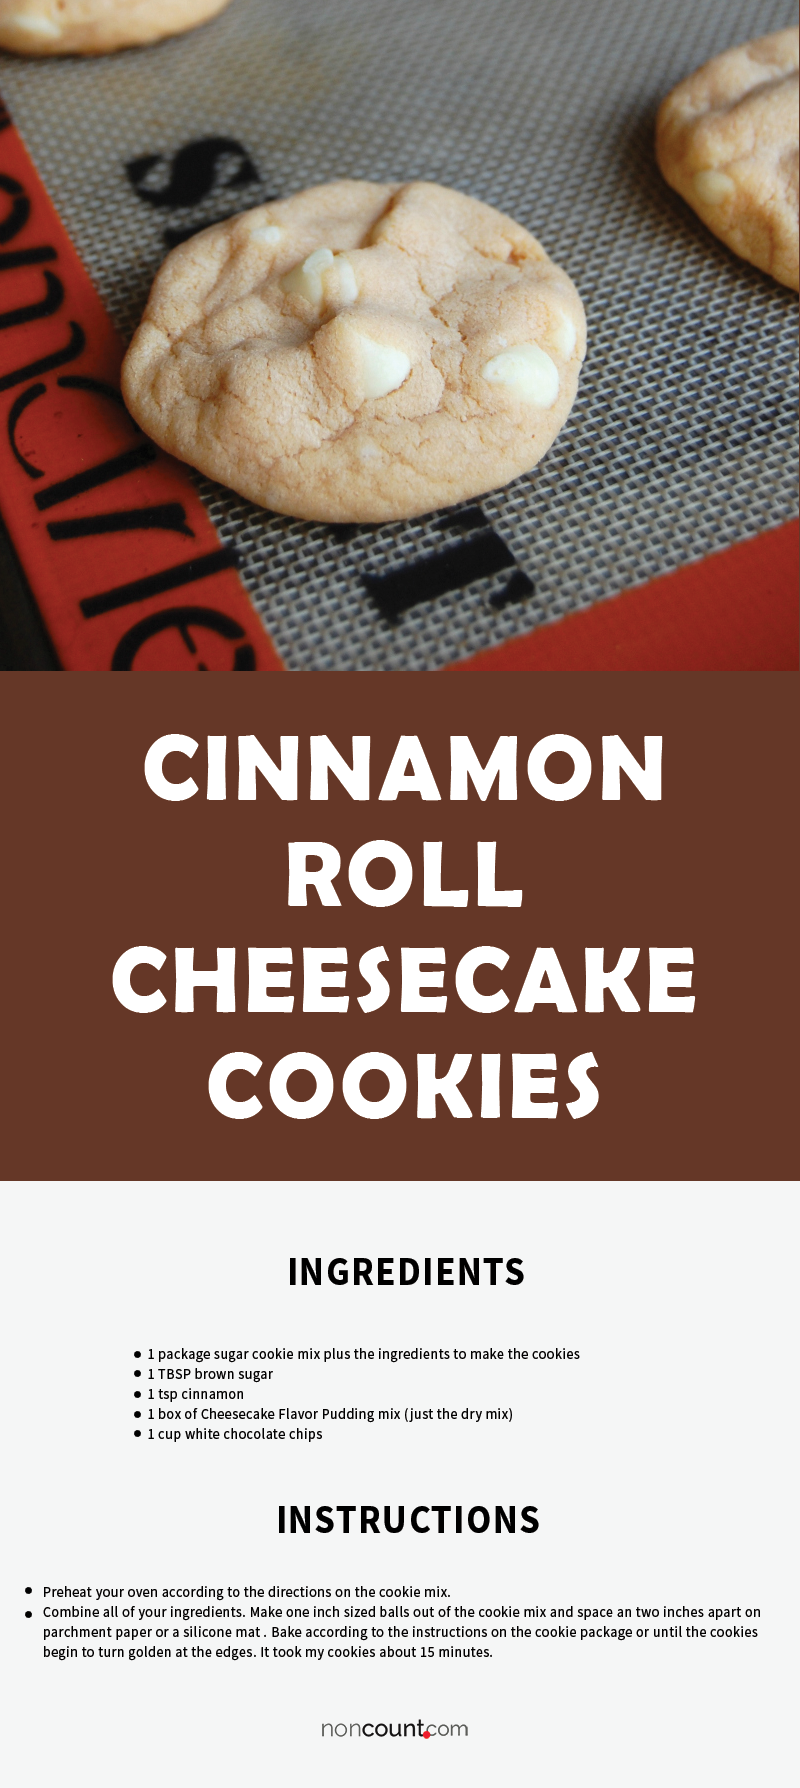 Cinnamon Roll Cheesecake Cookies Recipe Image